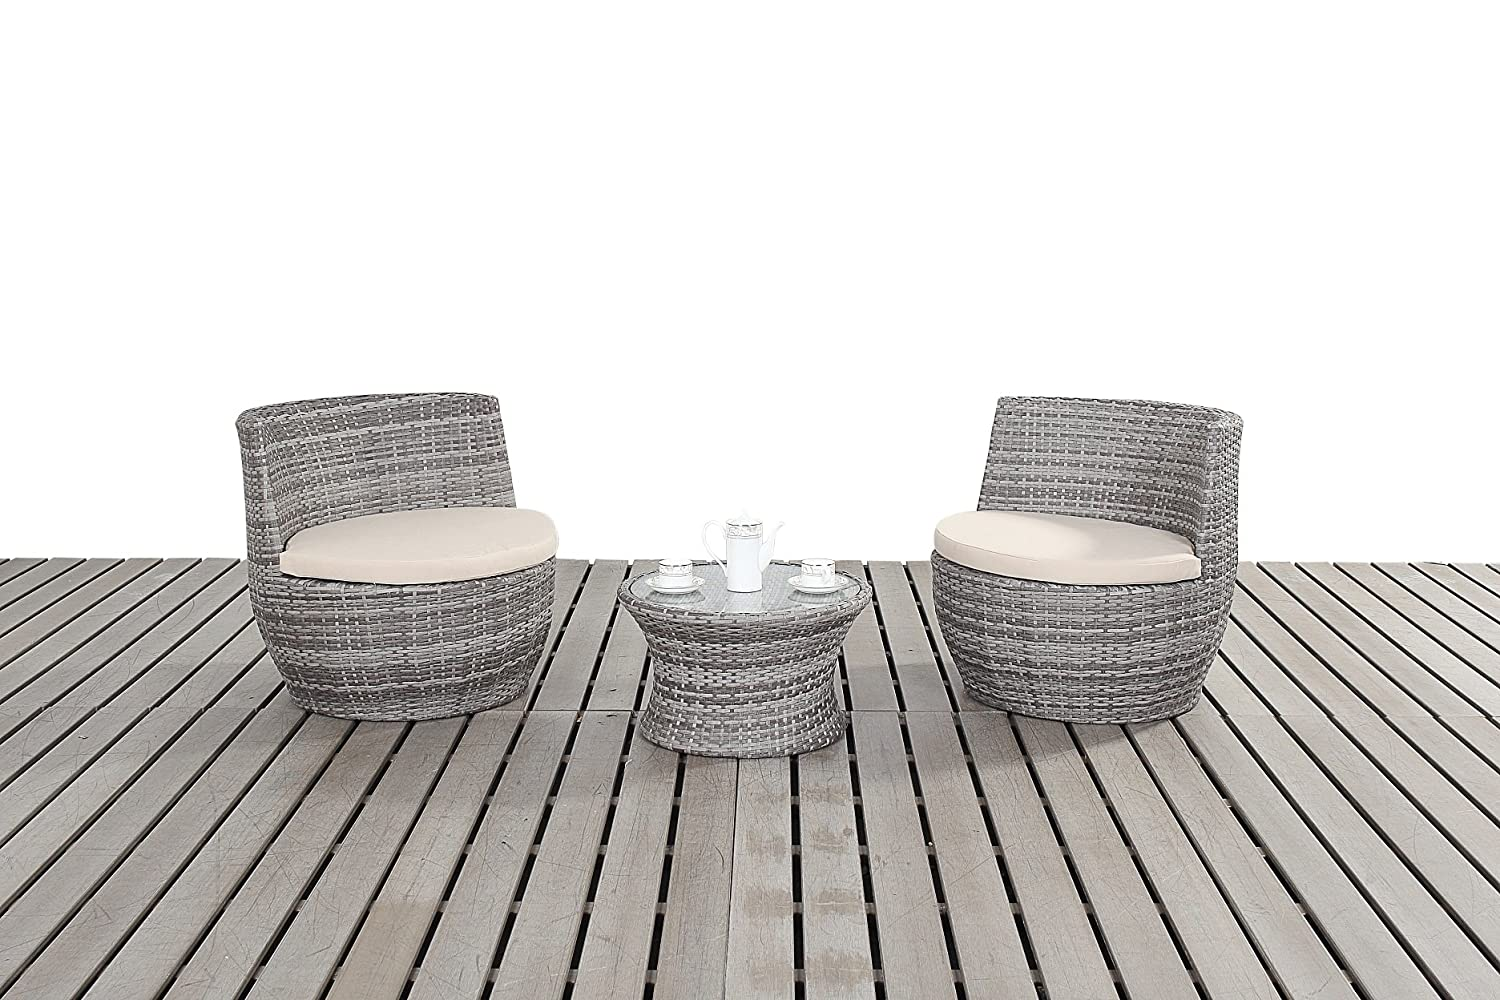 Dallas rustikal Garten Bistro Set, 2 Stühle stapelbar